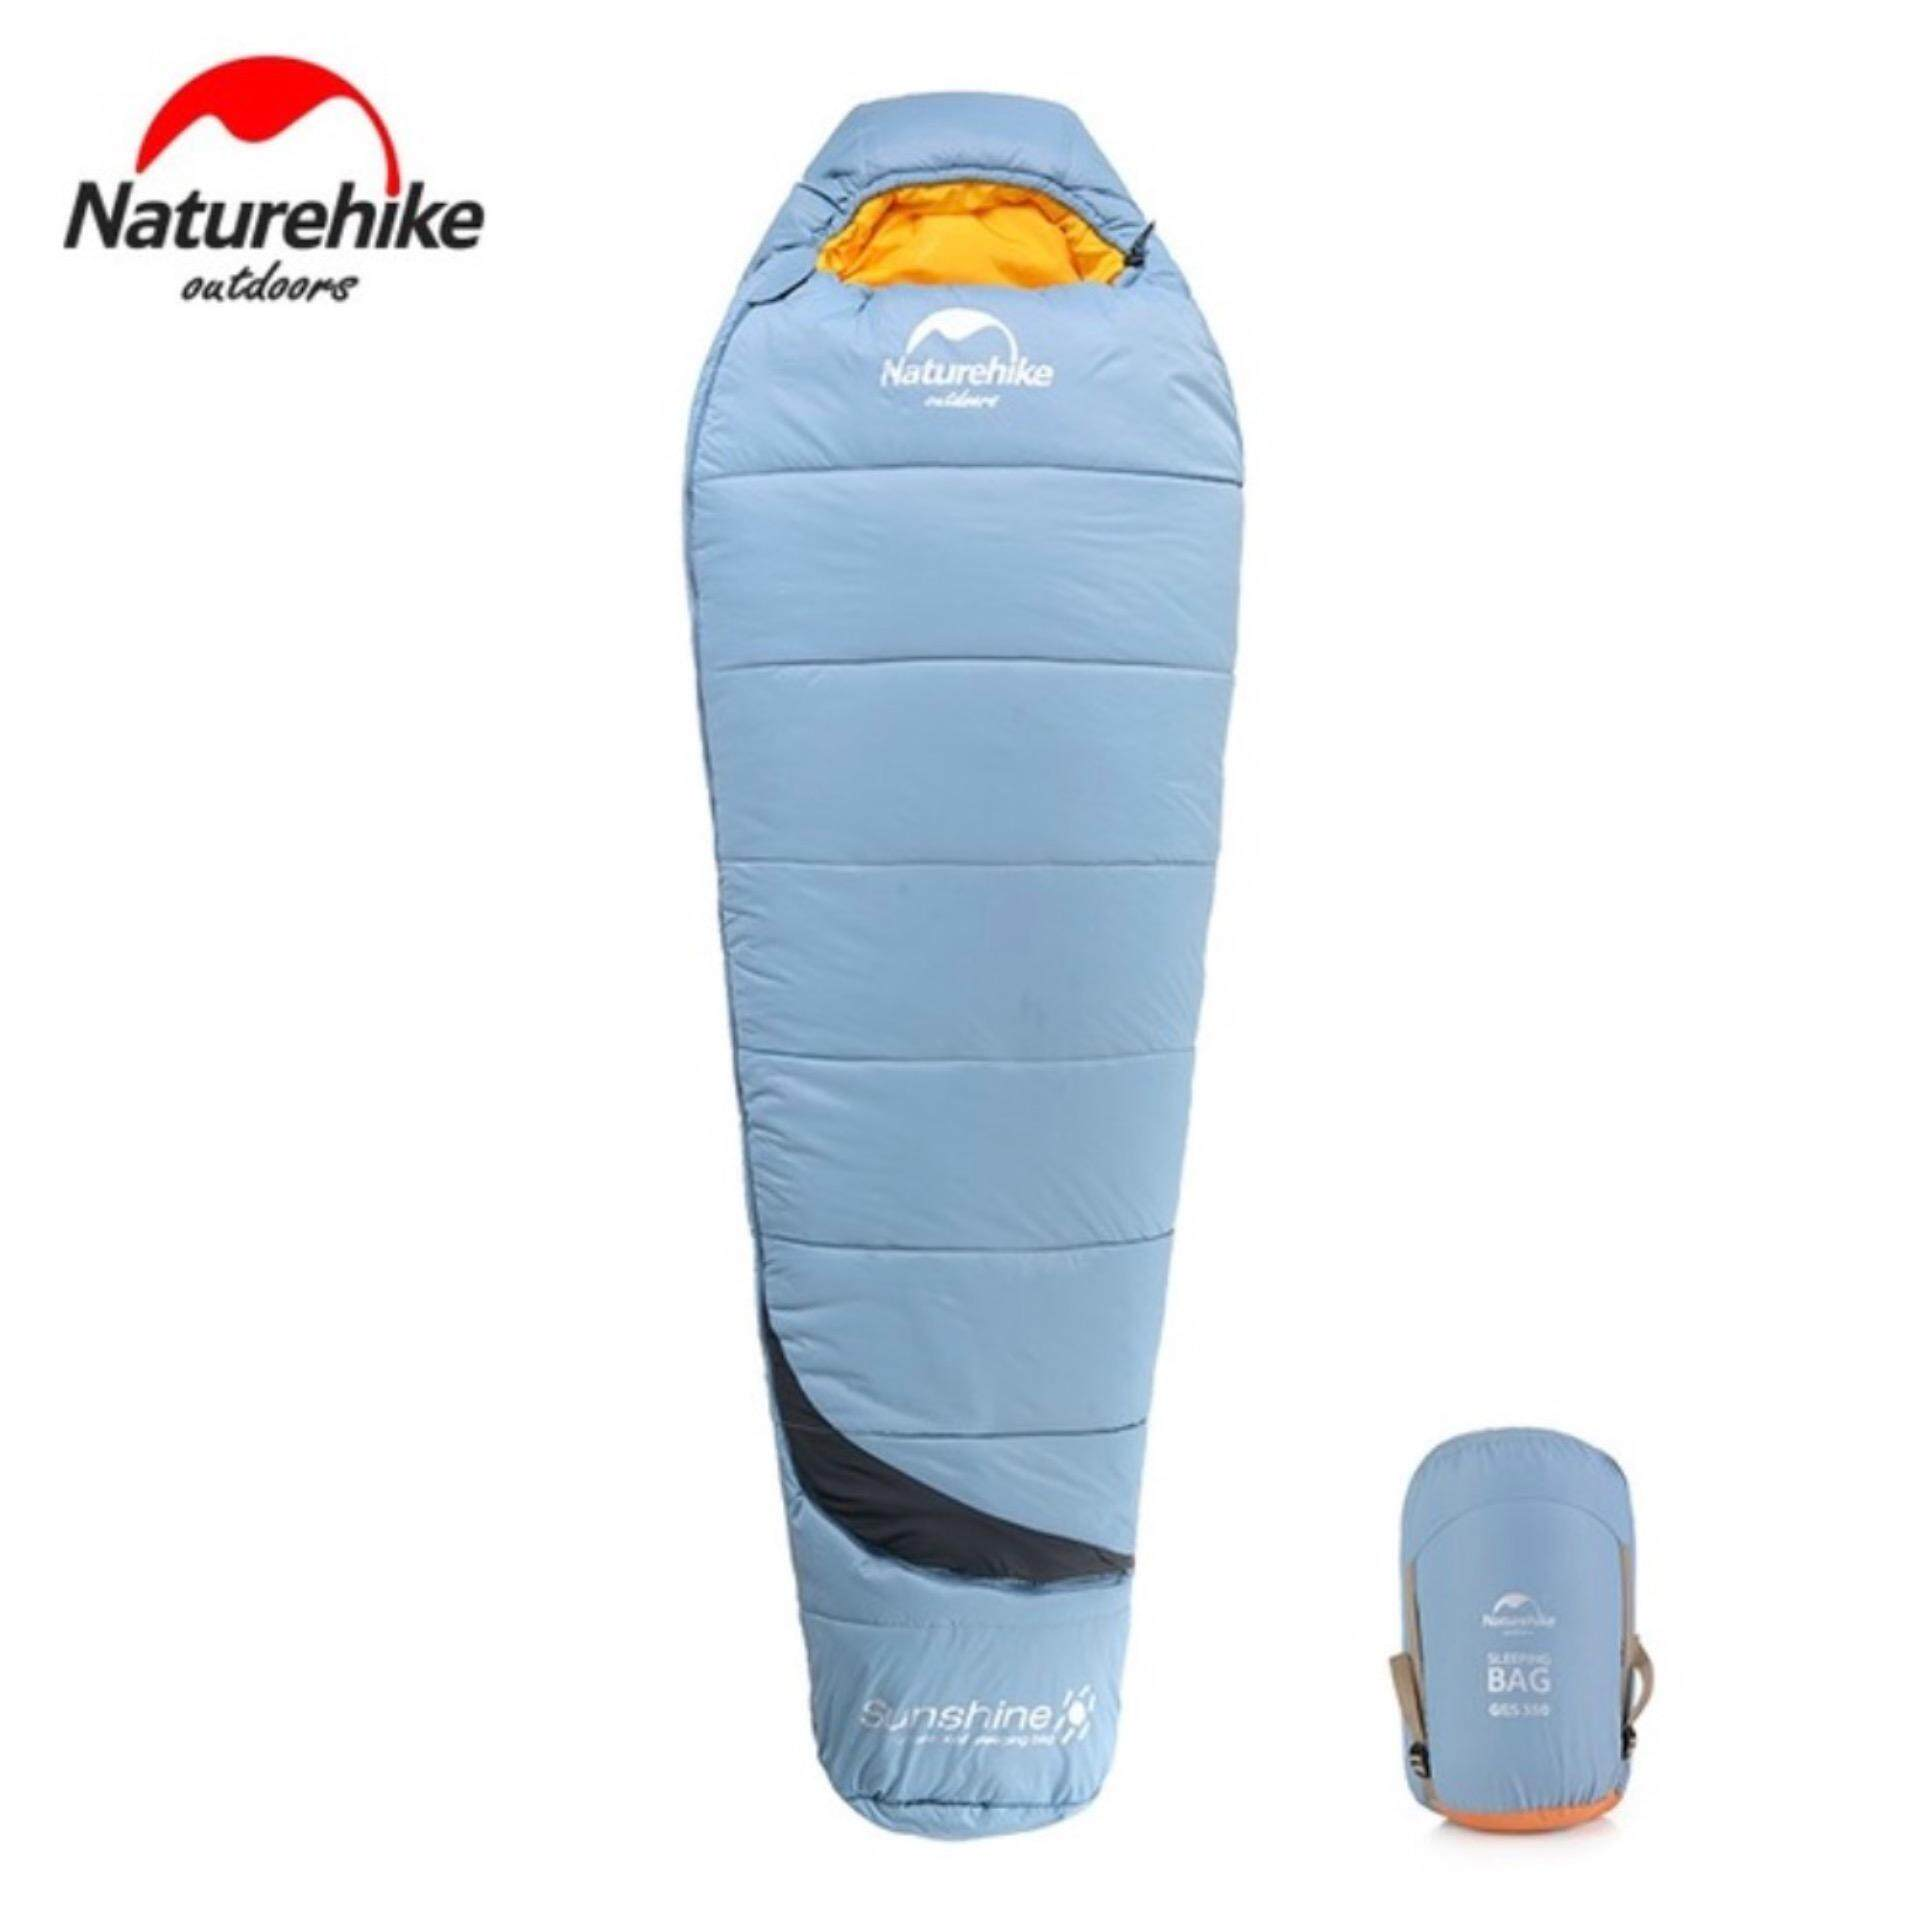 Sale Naturehike Sleeping Bags Outdoor Camping Down Sleeping Bag Winter Outdoor *d*lt Mummy Sleeping Bag Single Cotton Portable Tools Intl Online China